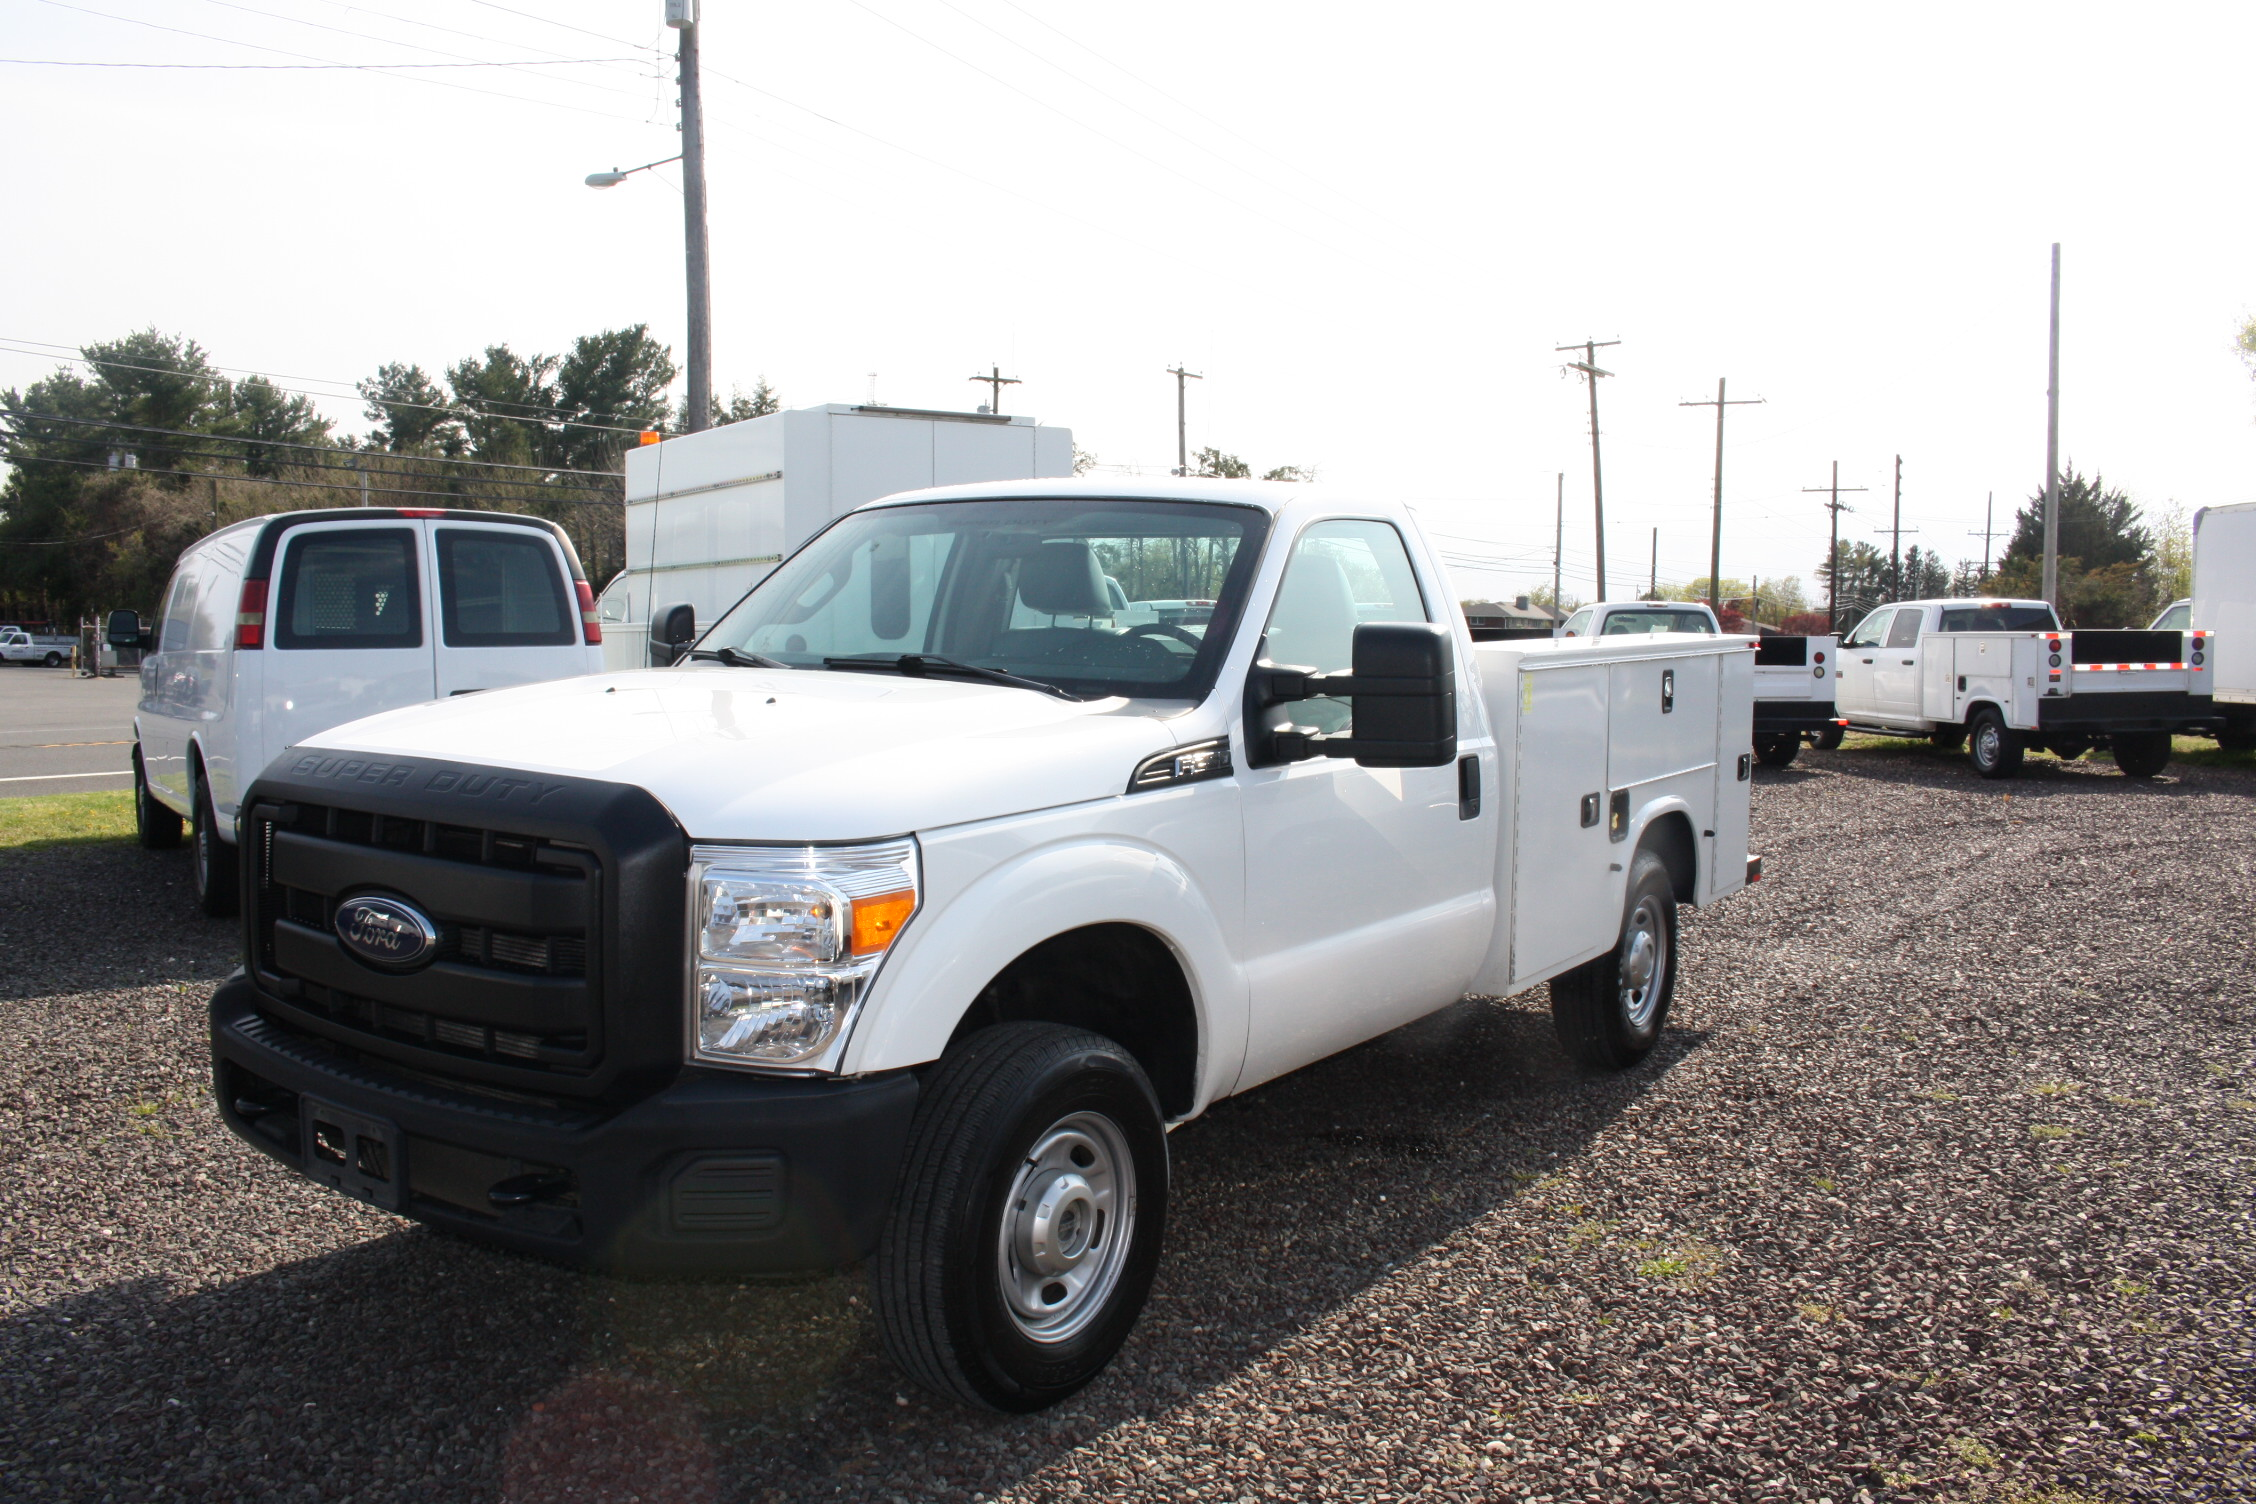 IMG 3578 - 2015 FORD F250 OPEN UTILITY TRUCK